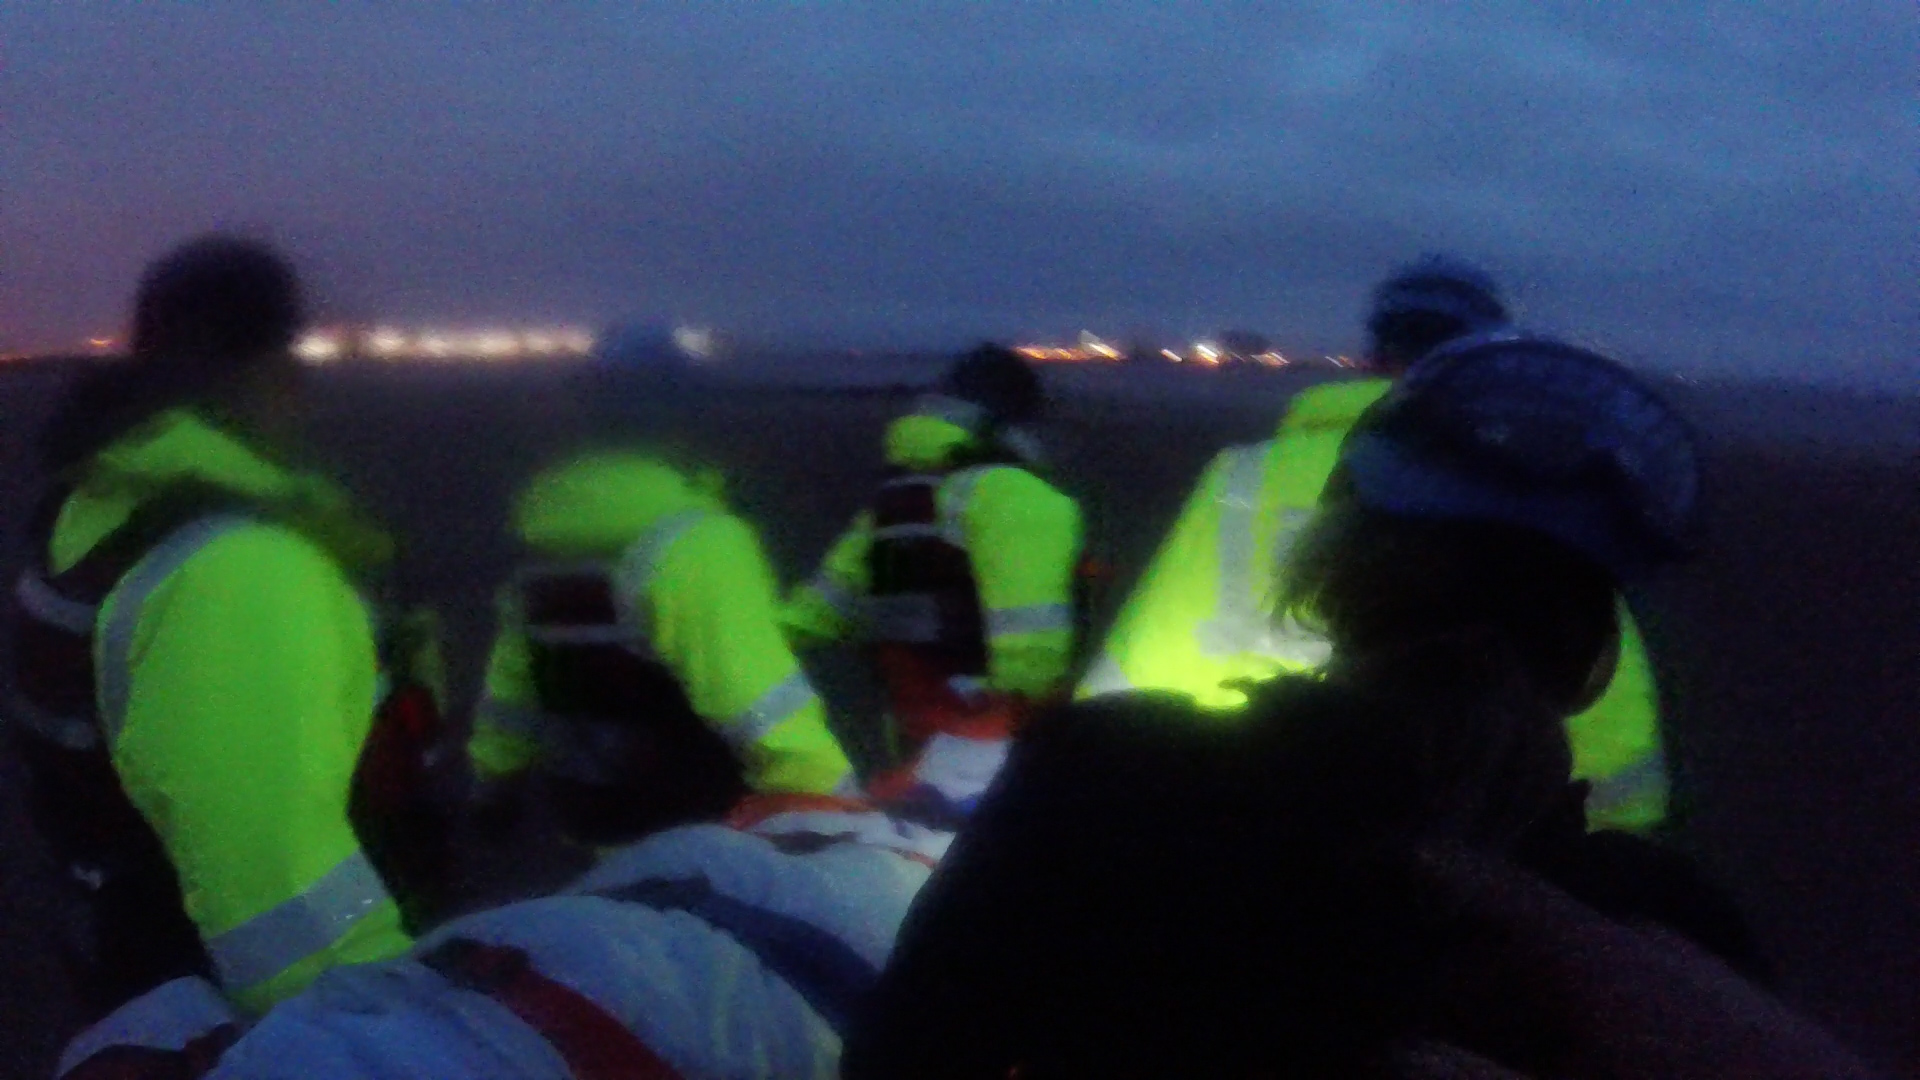 Rescue of man at South Gare, Redcar.